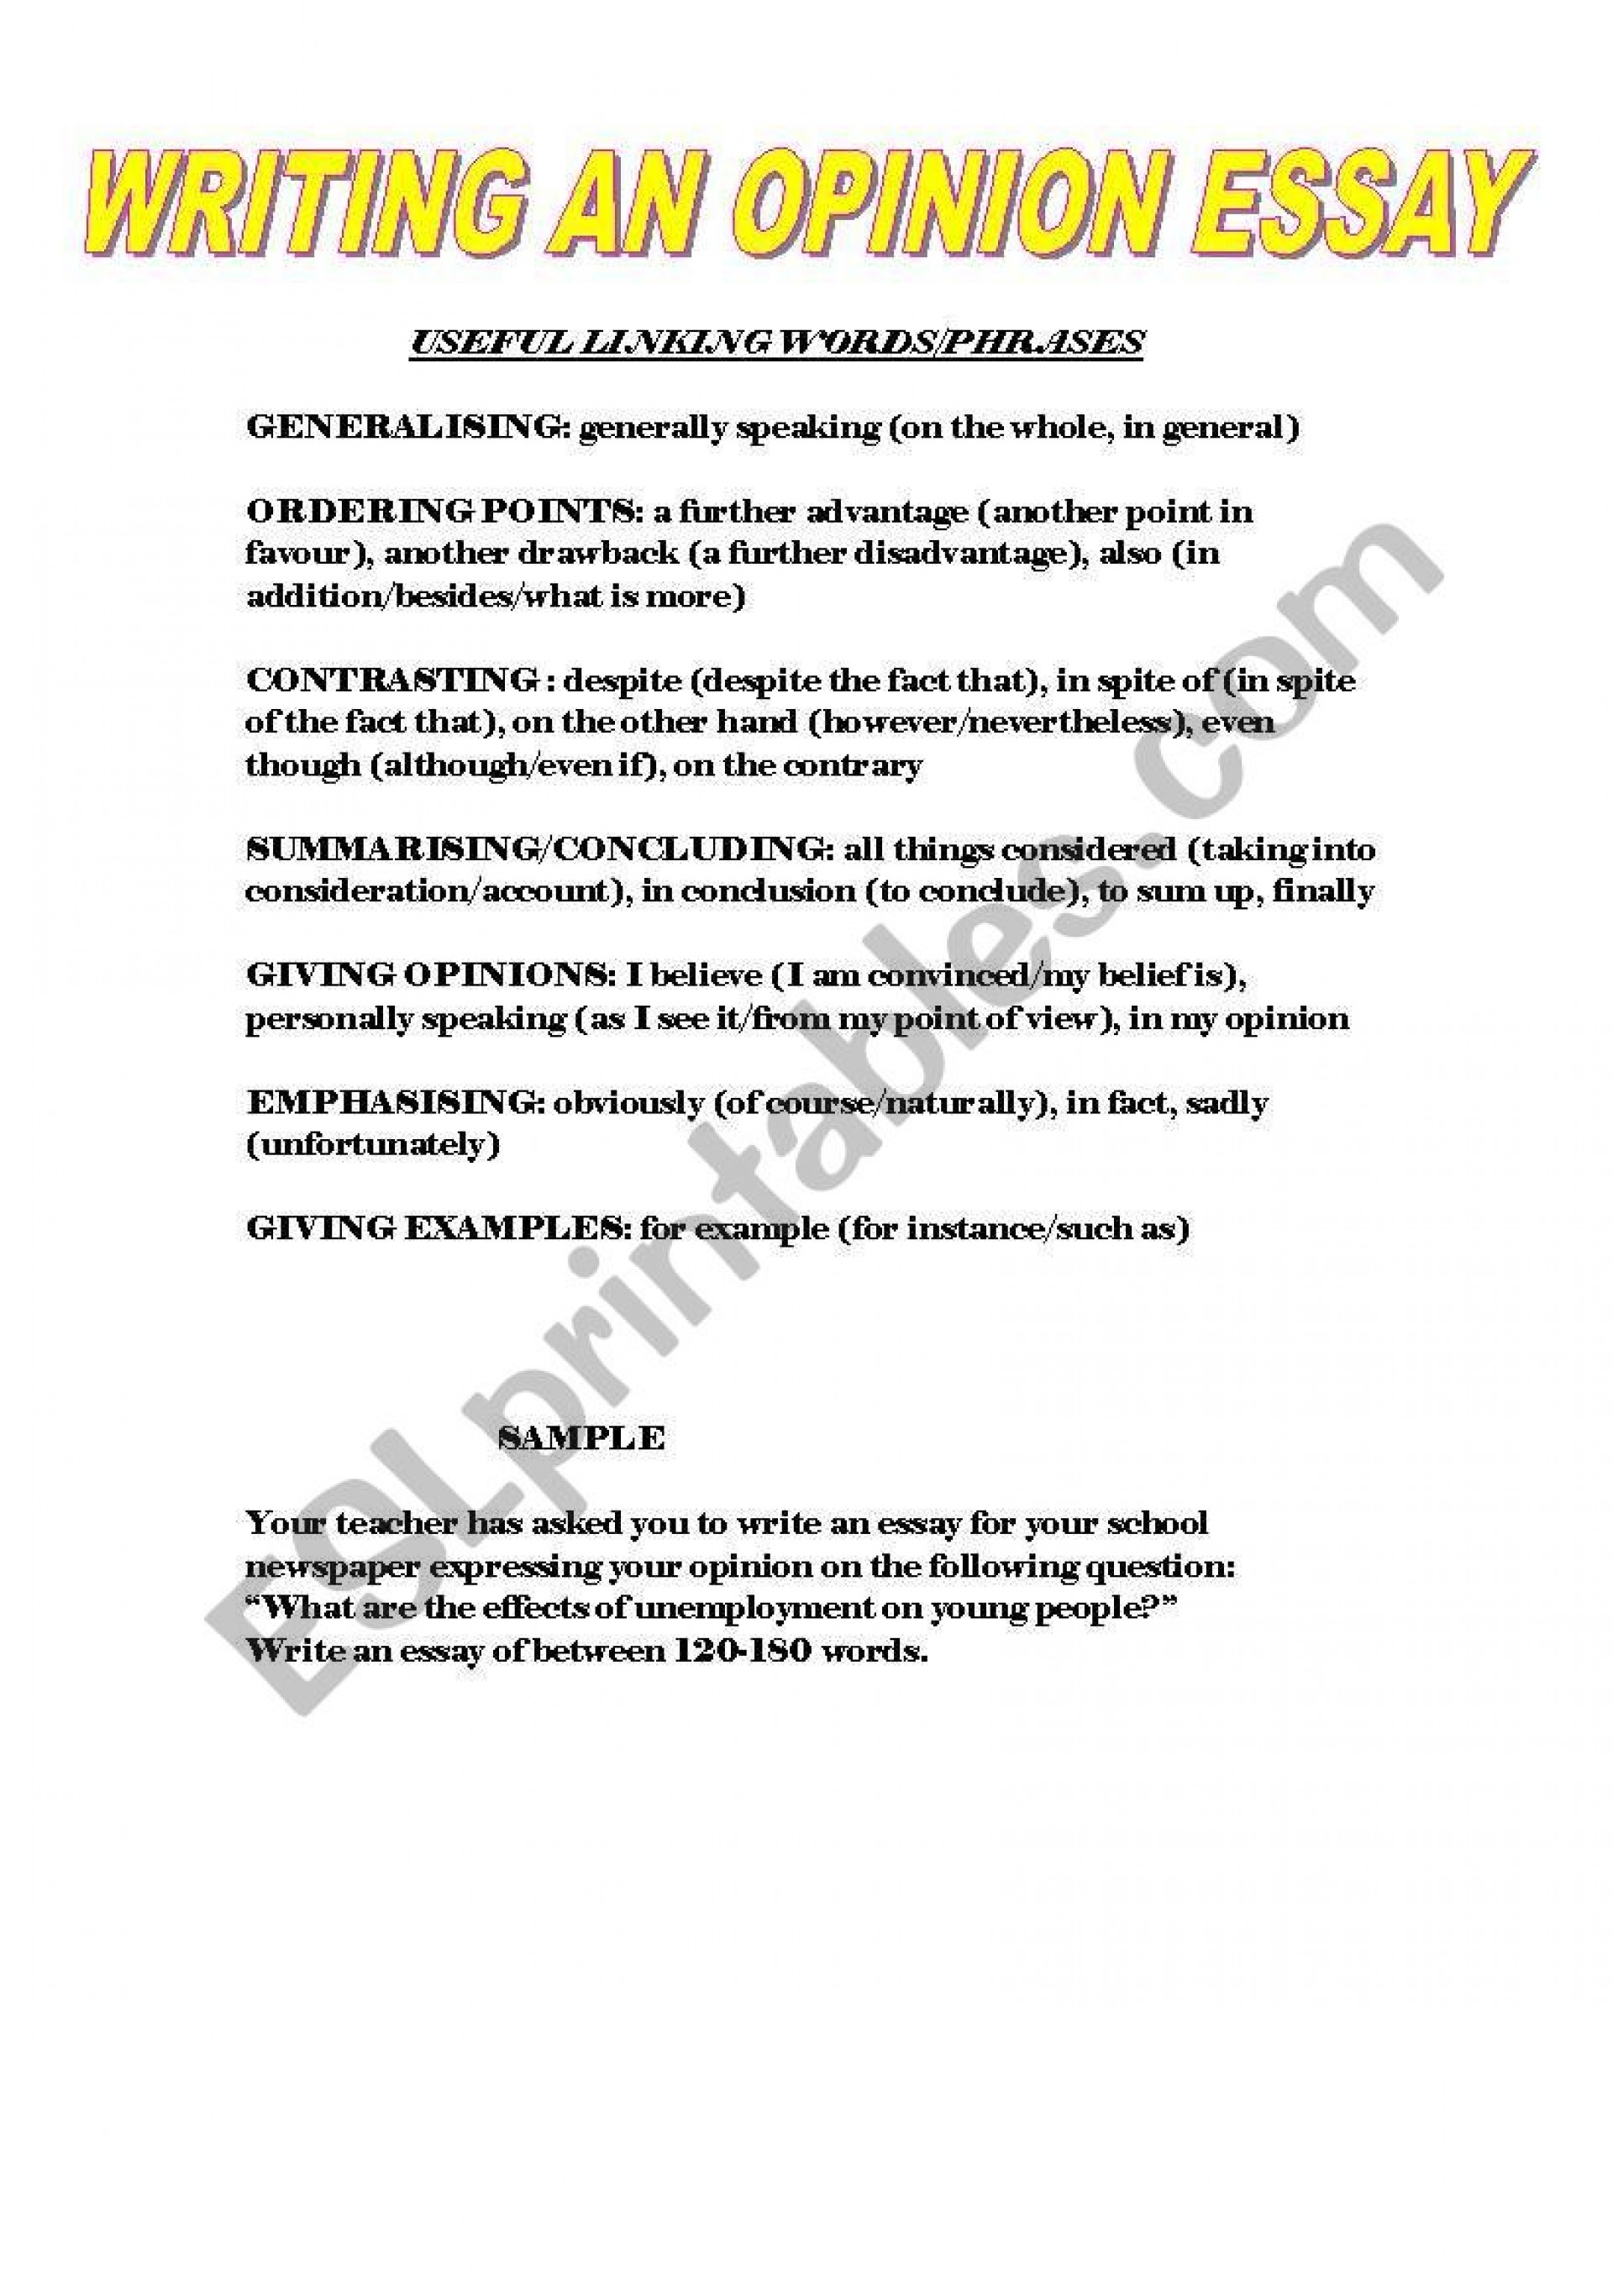 014 49469 1 Writing An Essay Example Magnificent Opinion Prompts 6th Grade Examples 3rd 1920